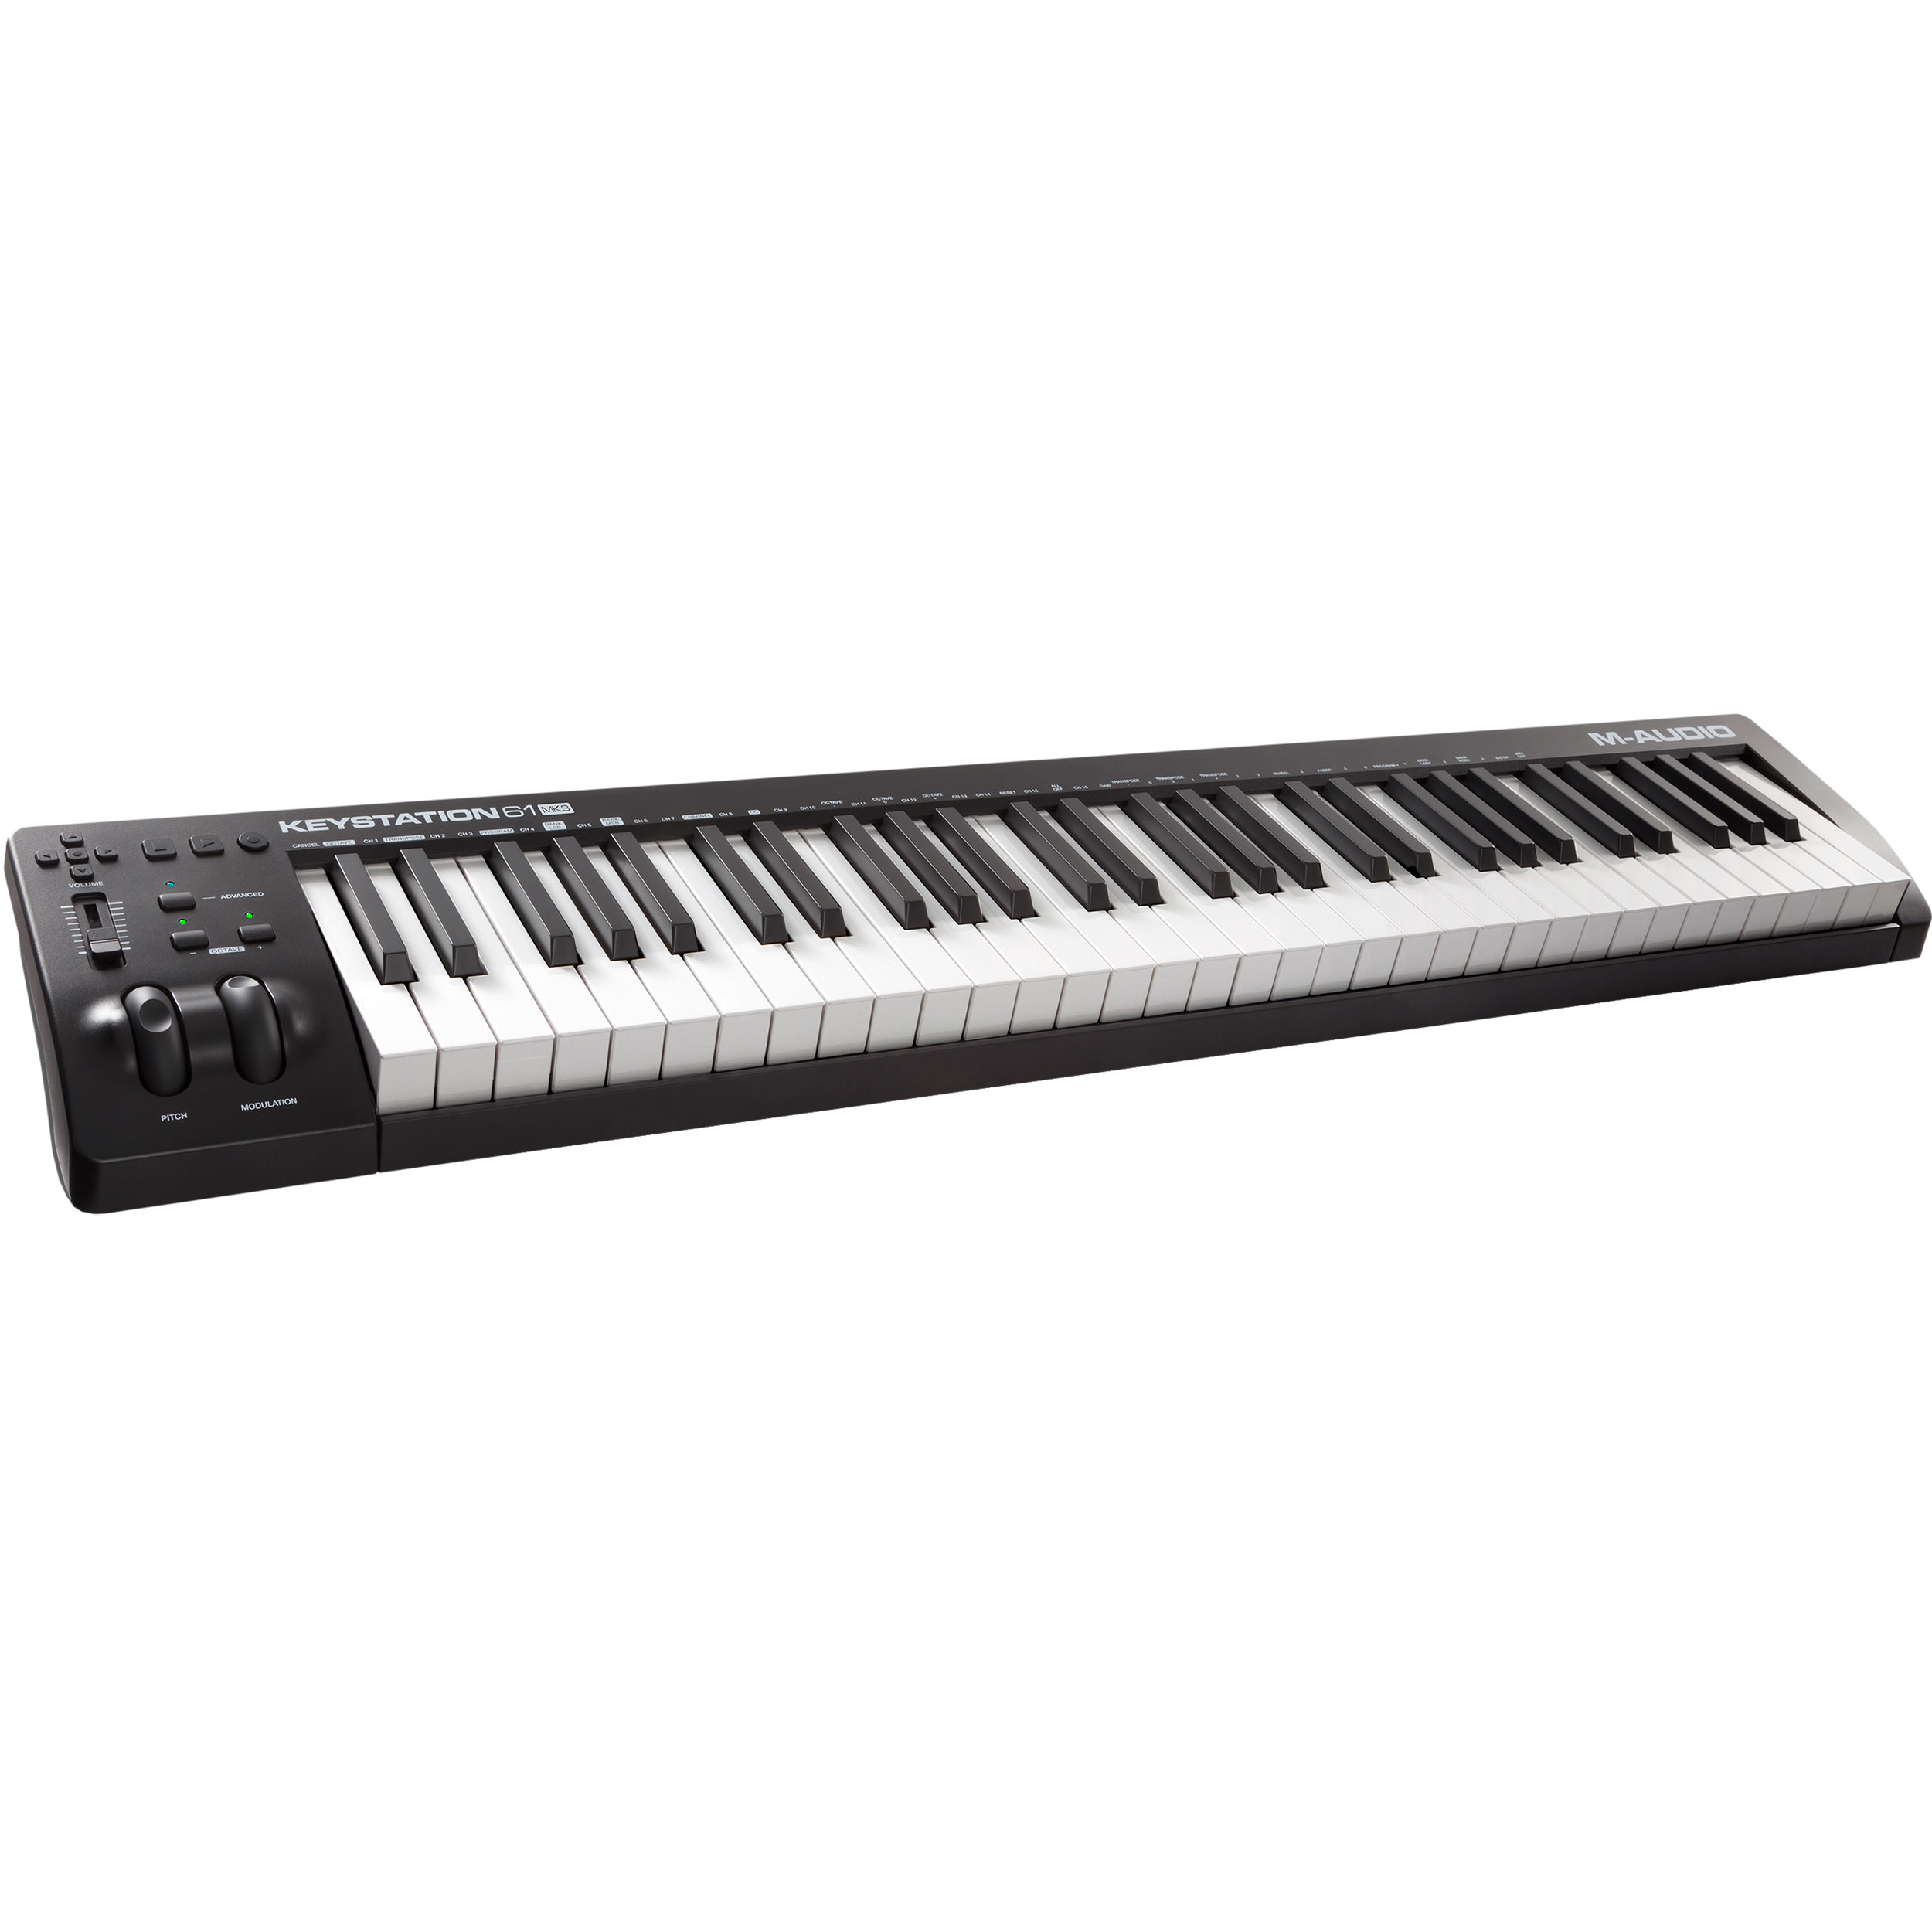 M-Audio 61-Key Keystation USB MIDI Keyboard Controller (MK3)